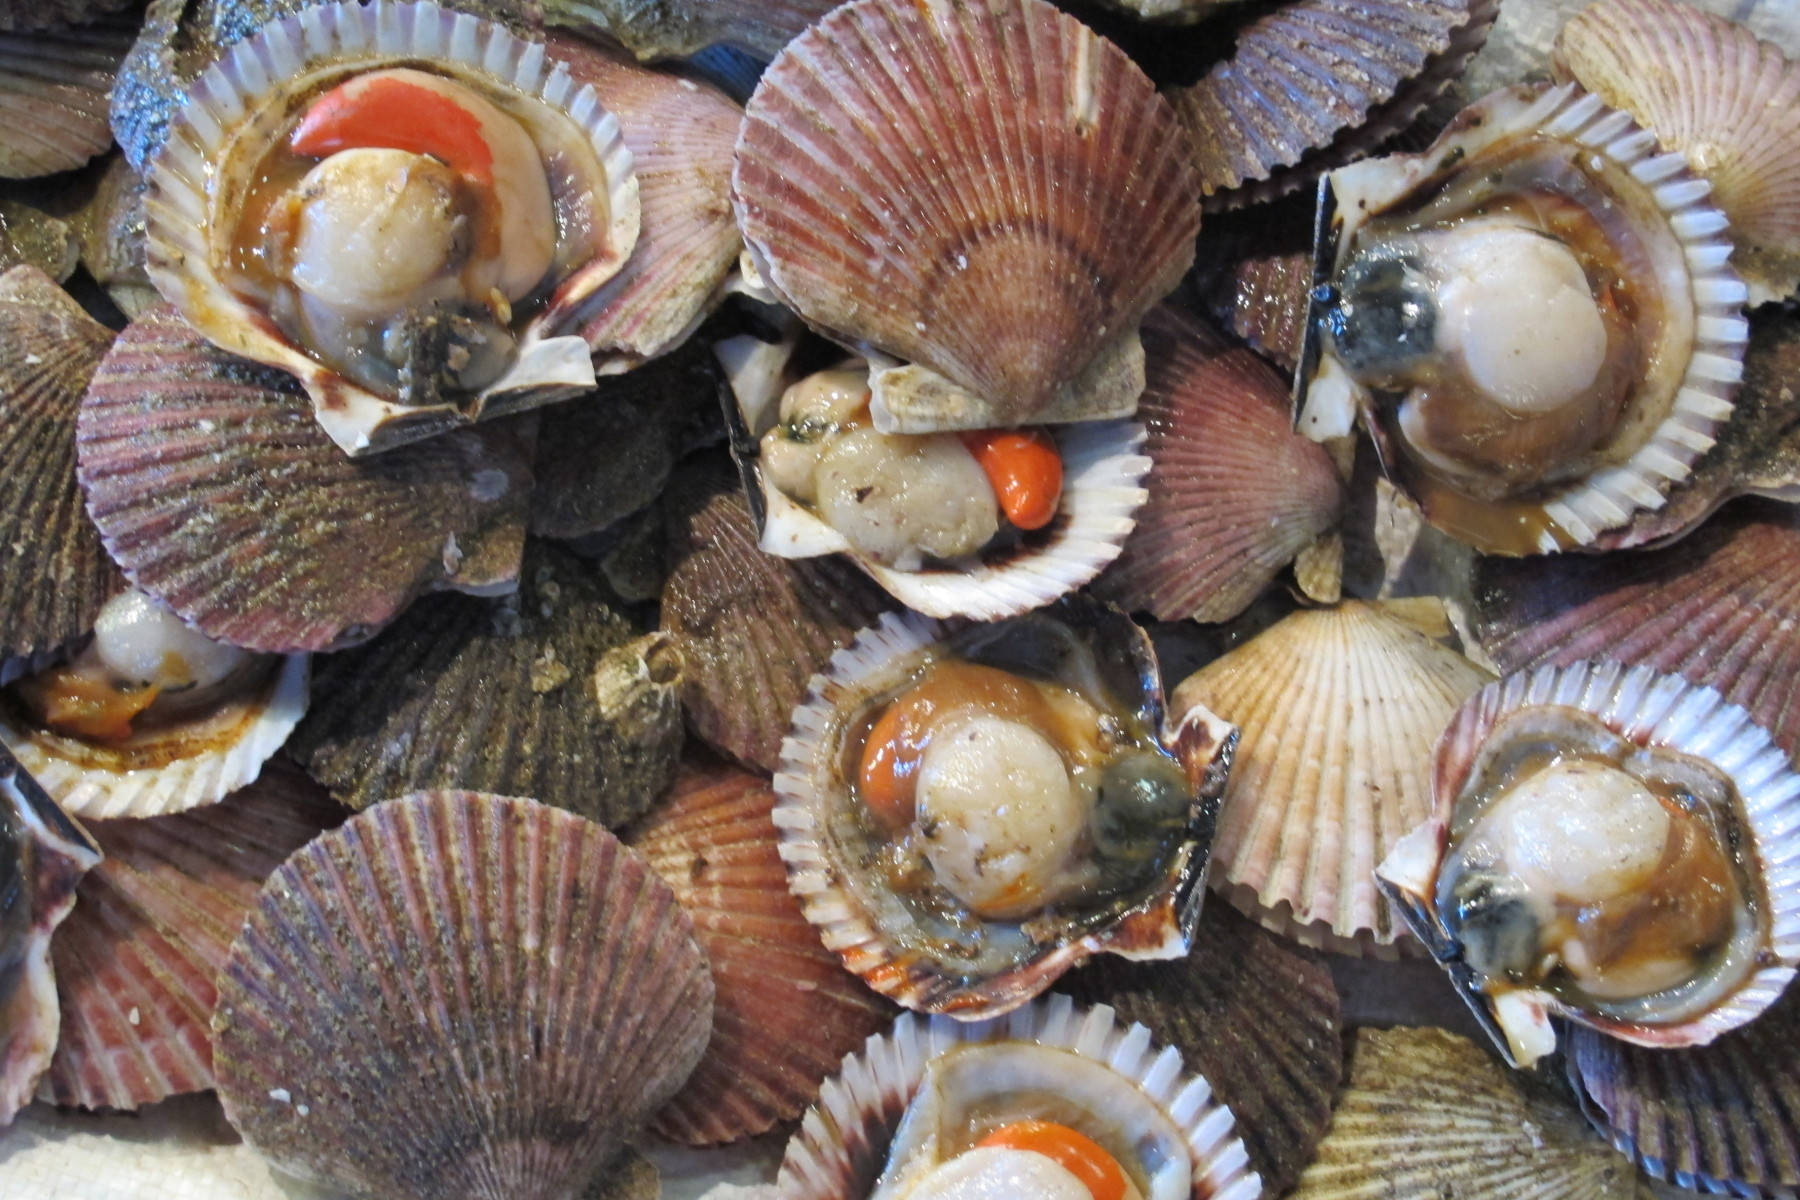 Fresh Scallops at Mercado Central, Santiago